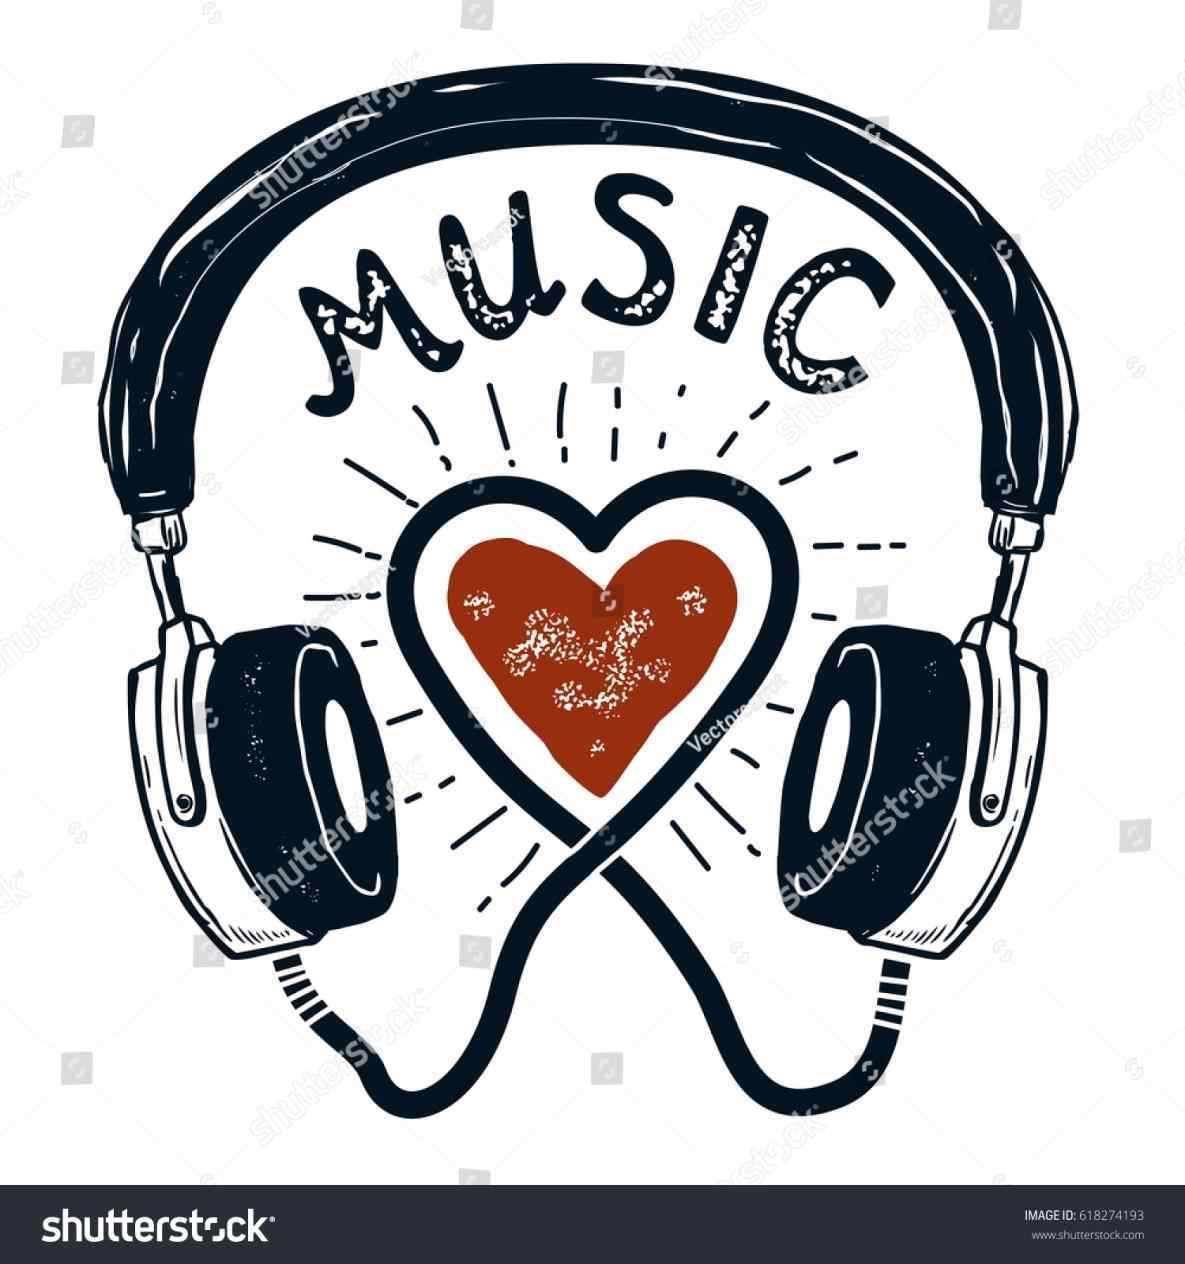 1185x1264 The Headphones Music Drawings Hottest Wedding Songs For And Dj